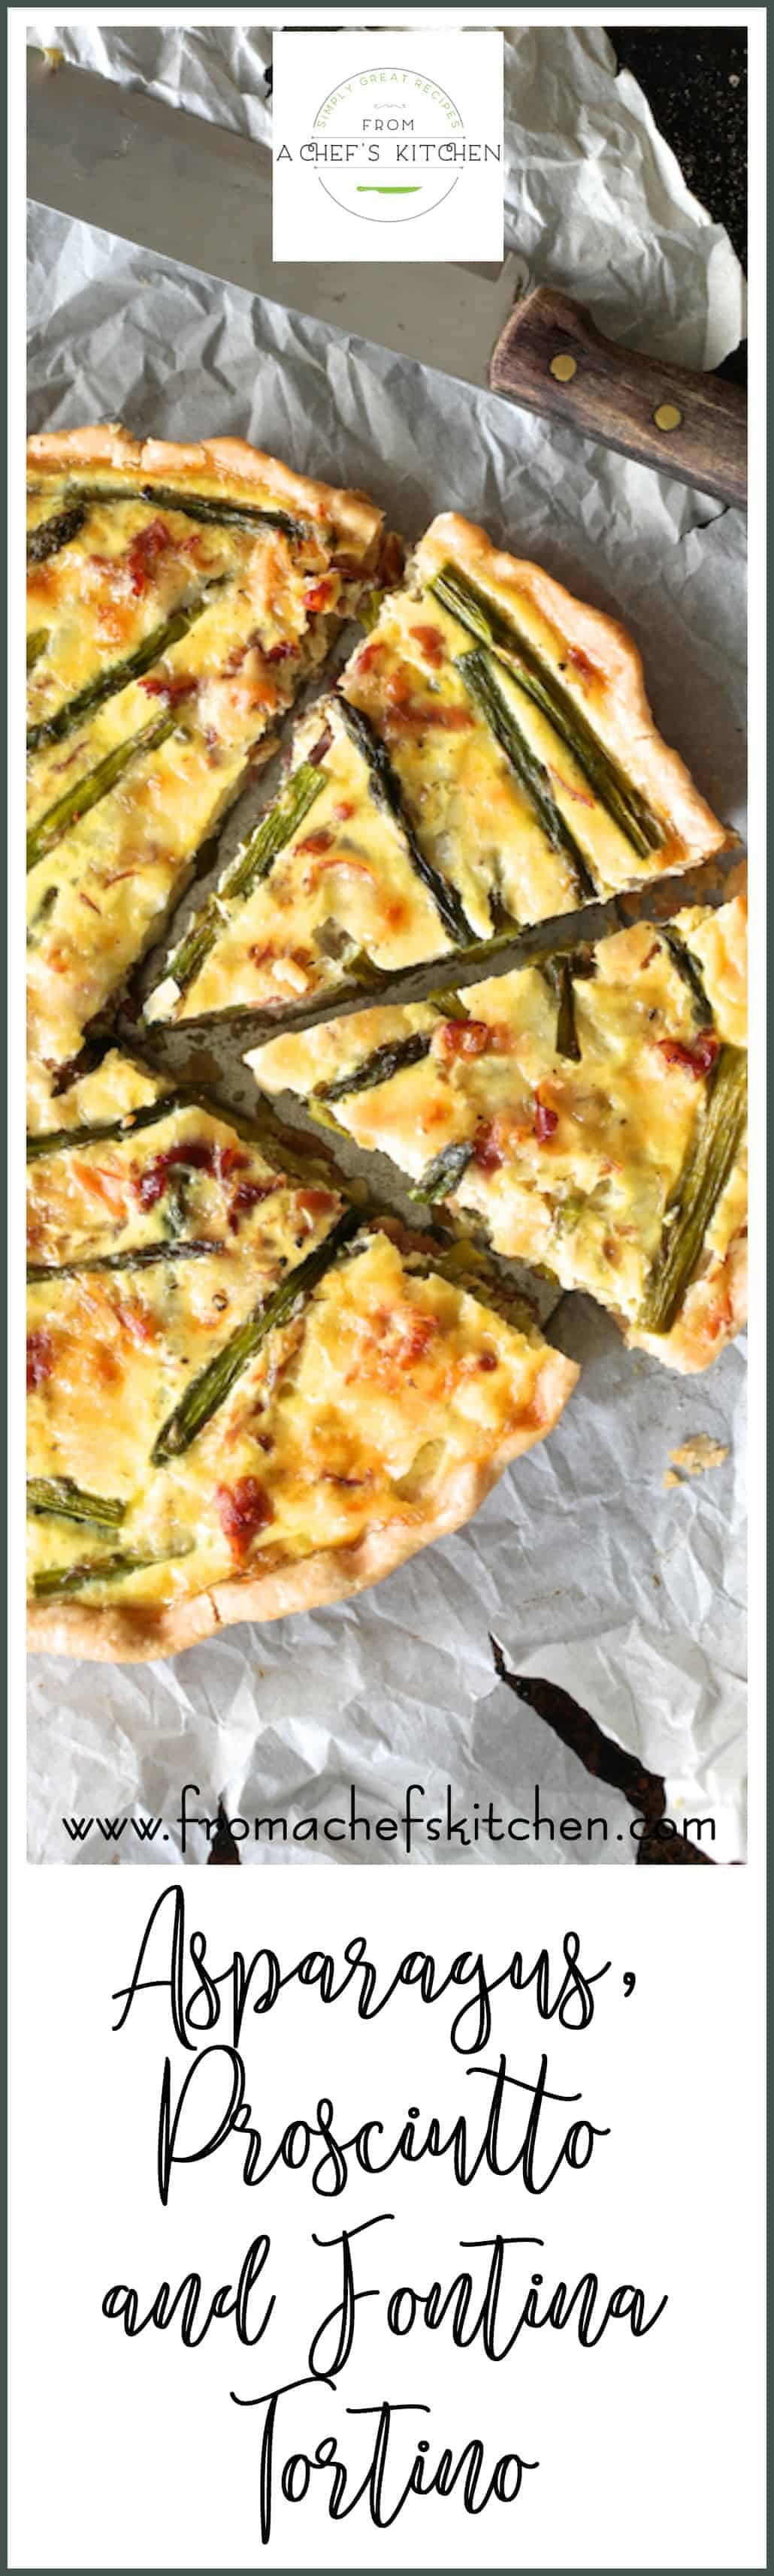 Asparagus Prosciutto and Fontina Tortino is how to turn a spring breakfast or brunch into amazing! Add a glass of Prosecco for a lovely Italian-inspired experience! #asparagus #prosciutto #tart #quiche #fontina